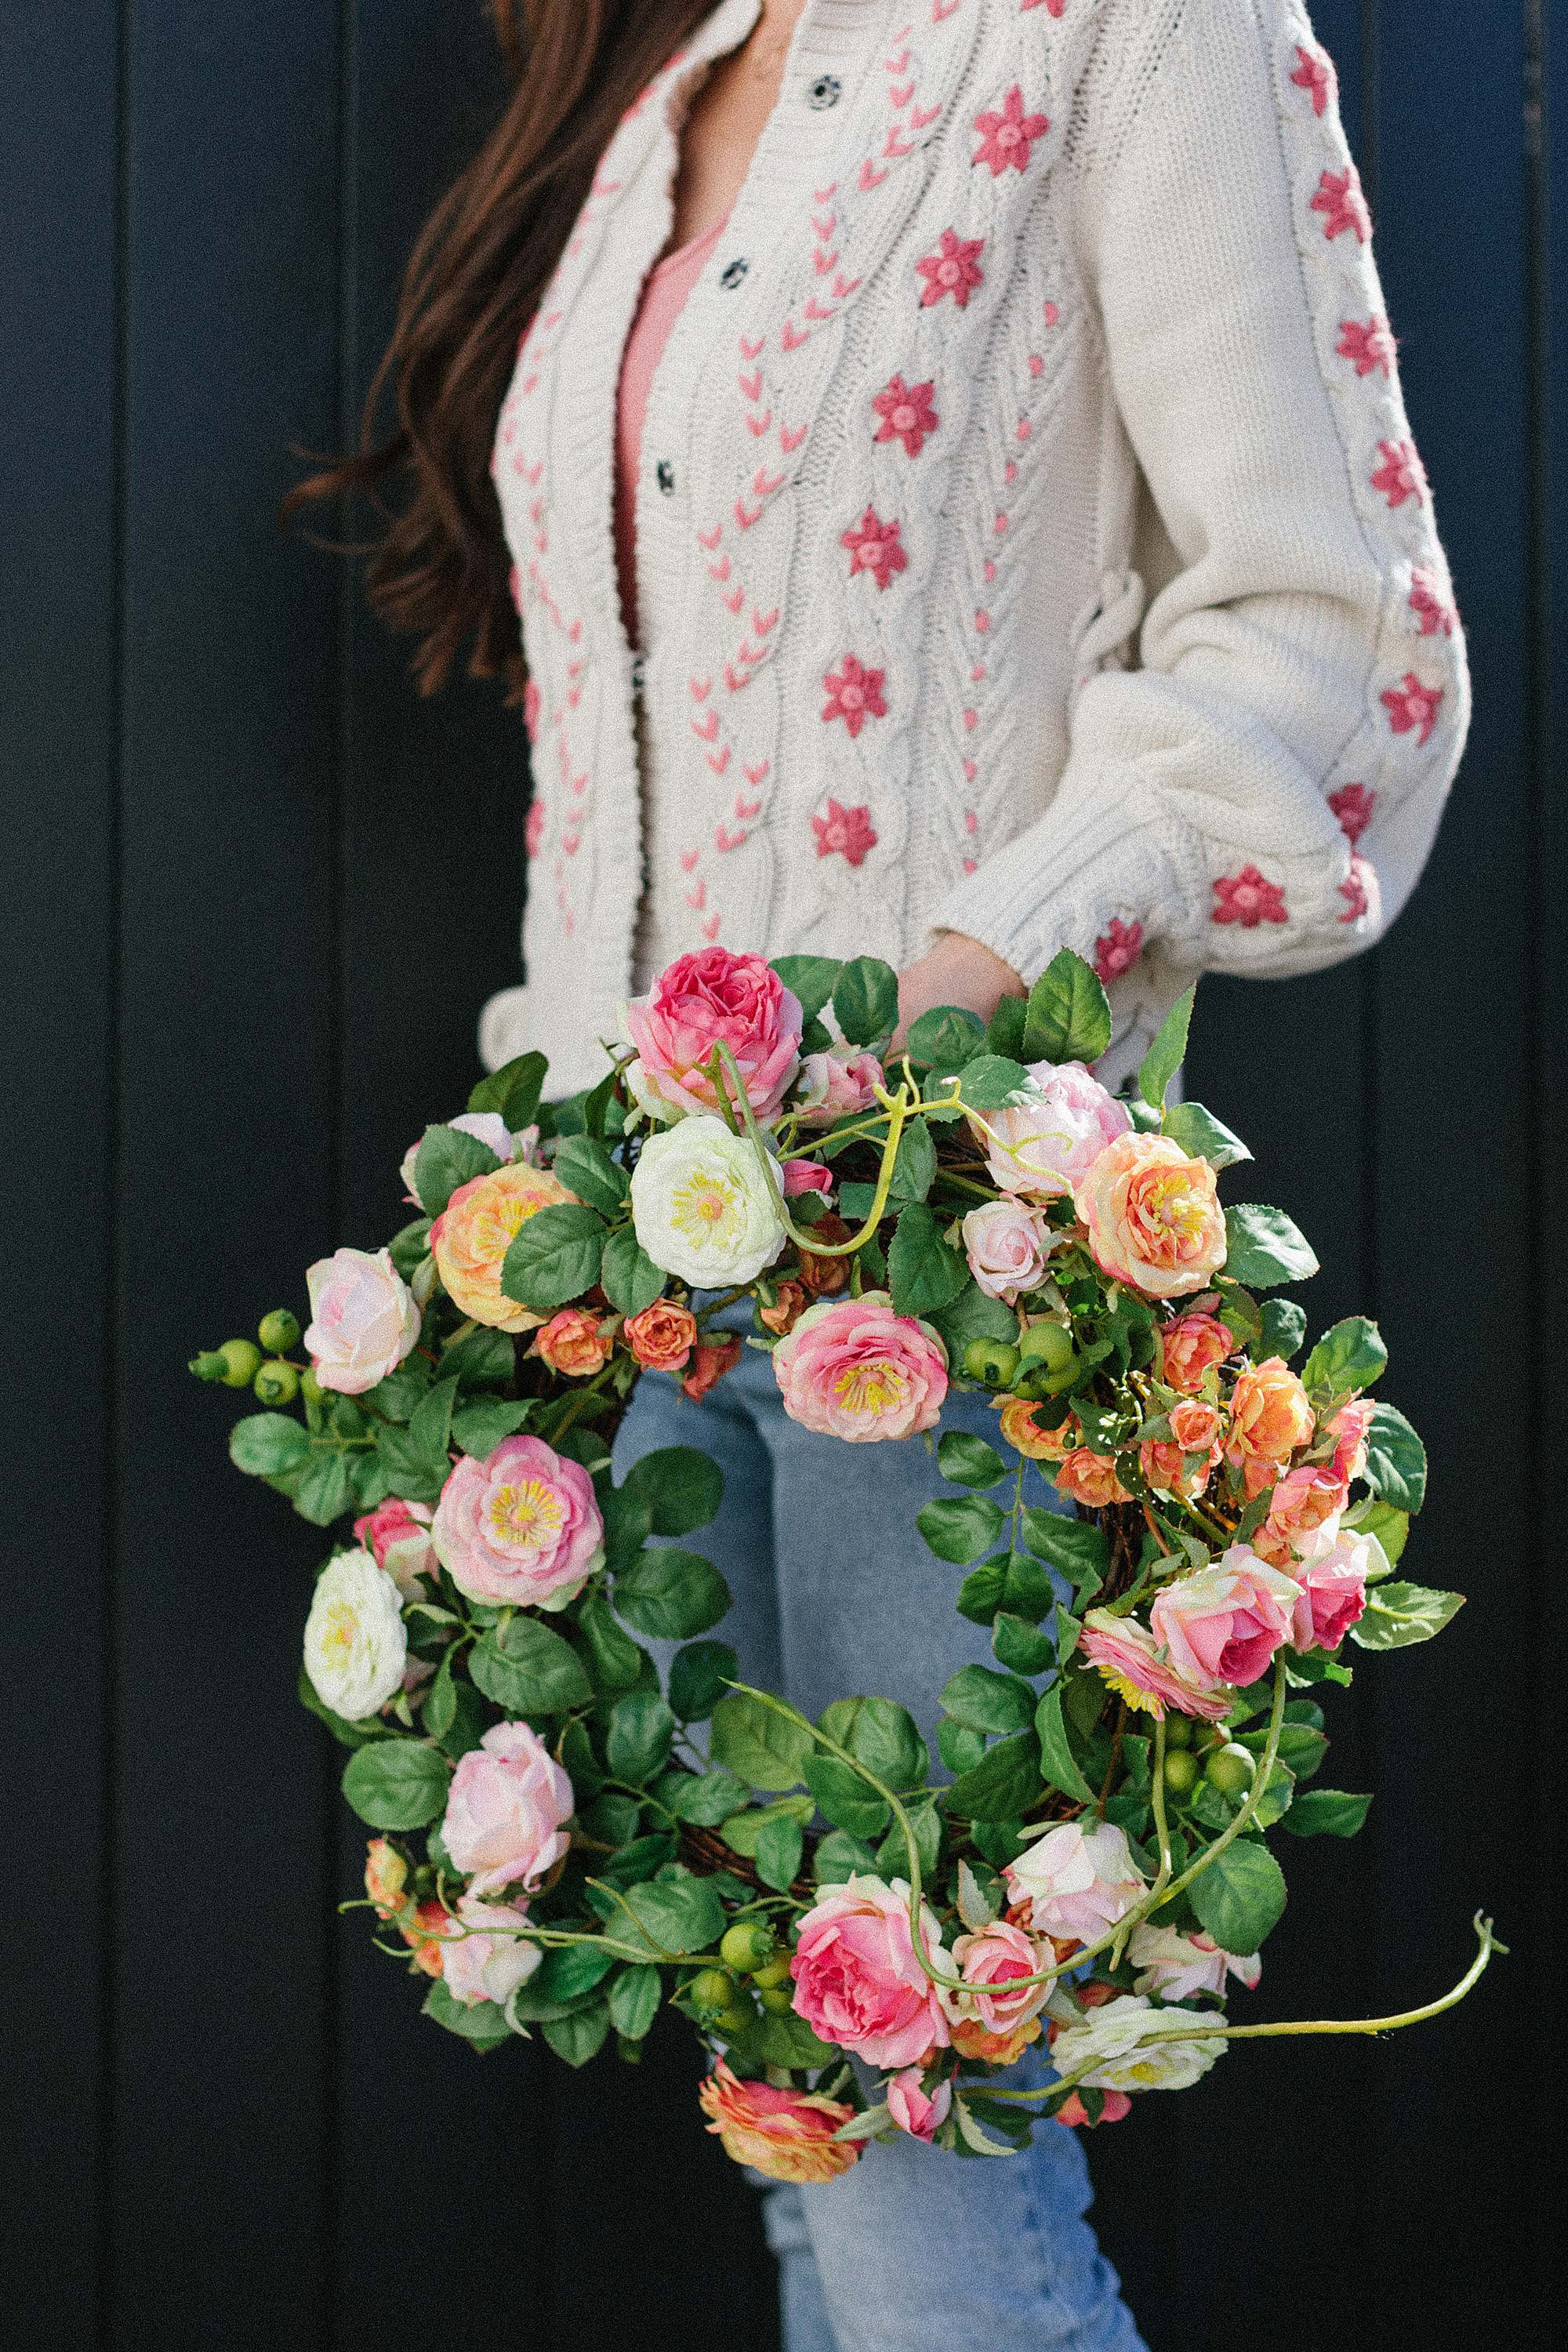 easter floral spring wreath from Macys - Phoenix Arizona lifestyle home and garden blogger Diana Elizabeth holding floral spring wreath